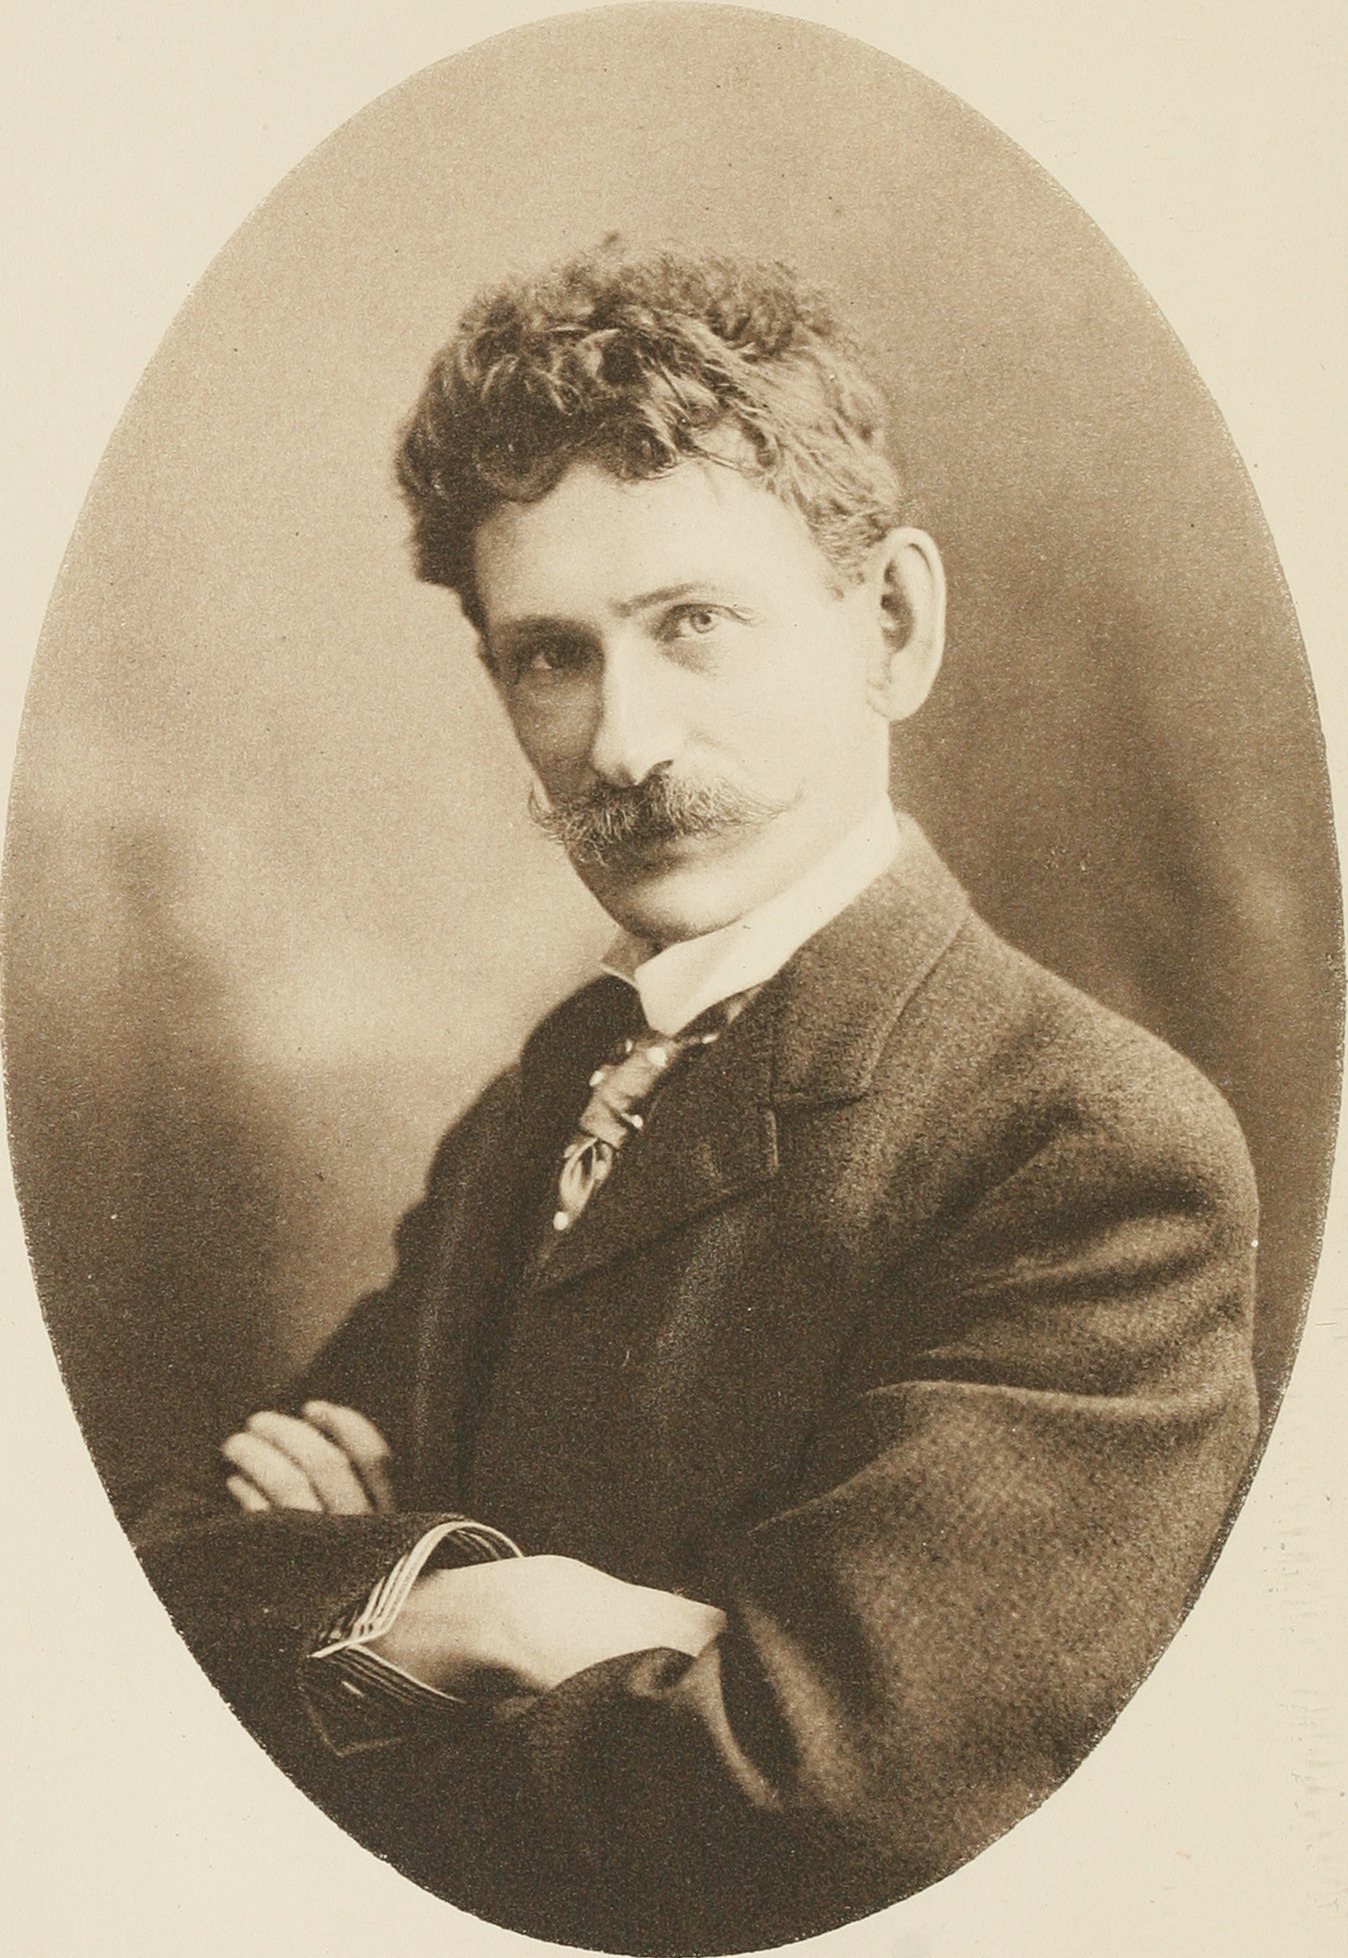 Peter Newell (before 1902)